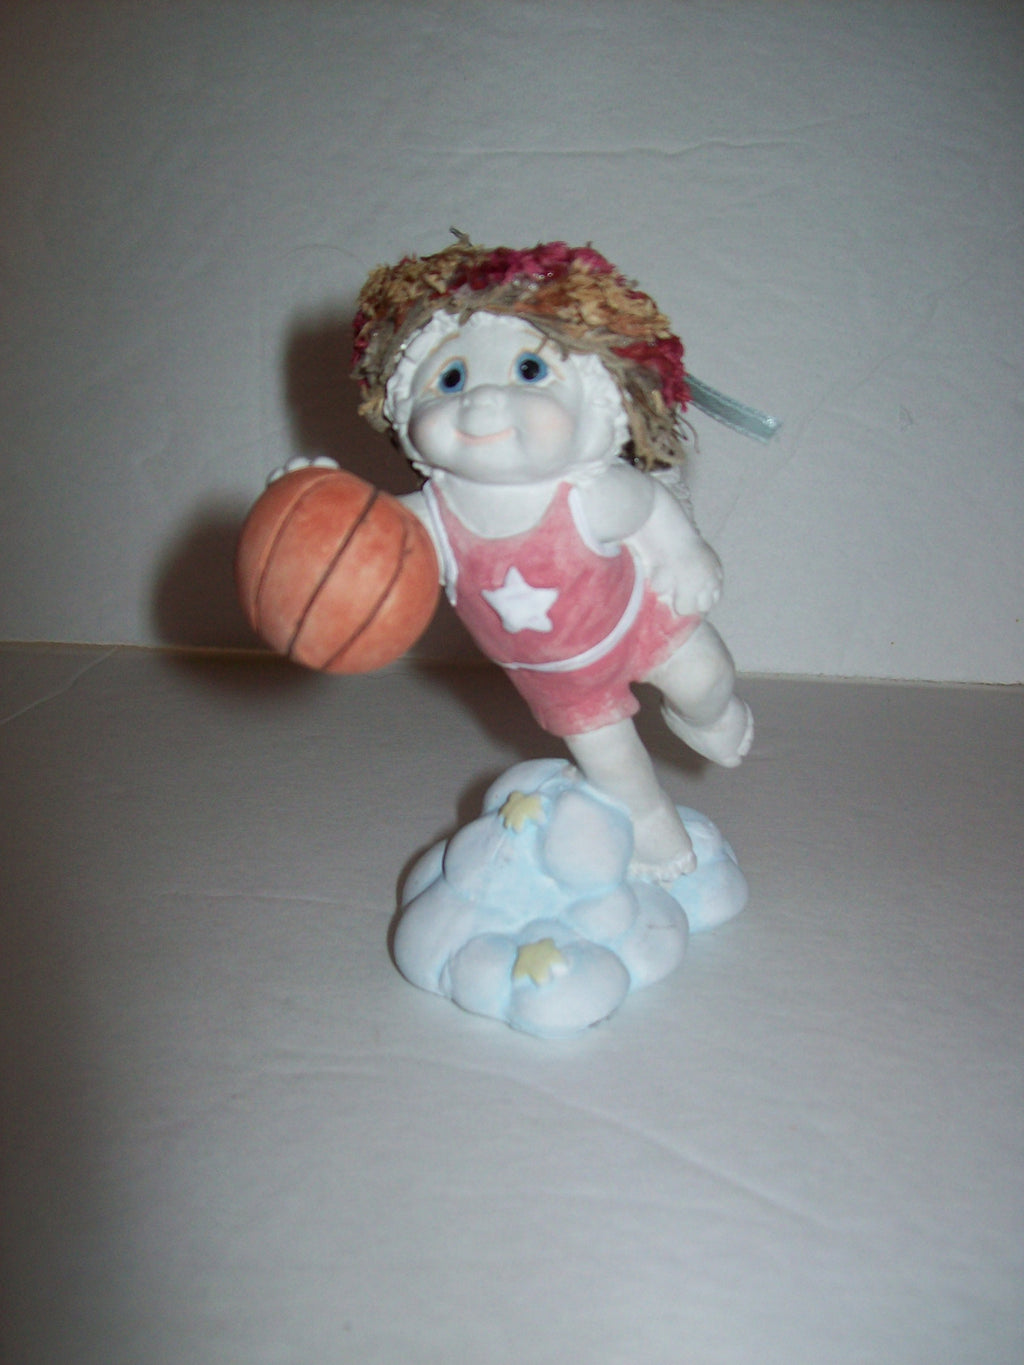 Dreamsicles All Star Basketball Figurine - We Got Character